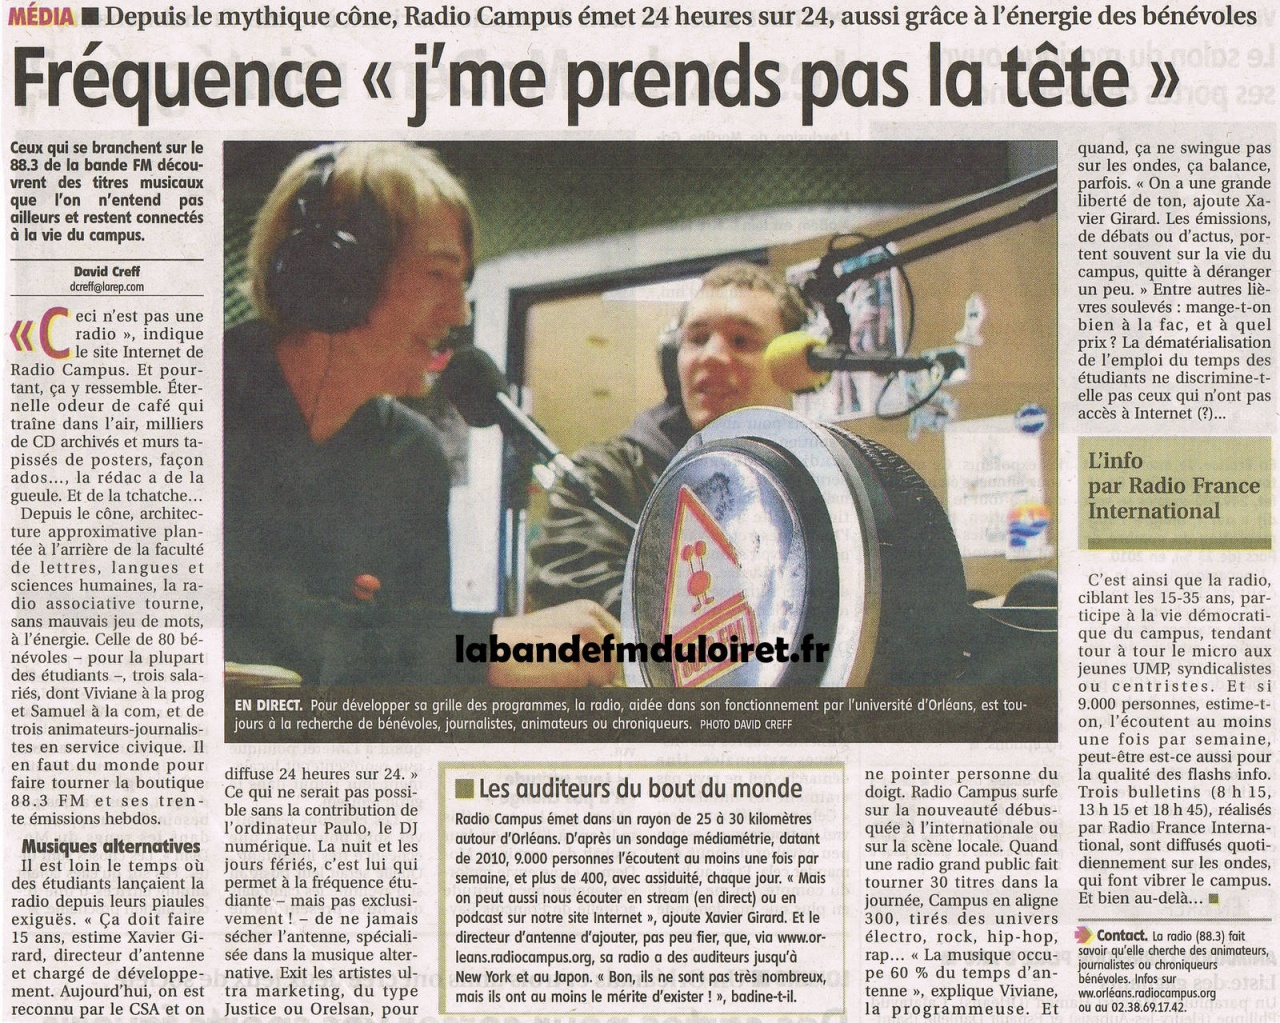 article de presse 3 nov. 2011